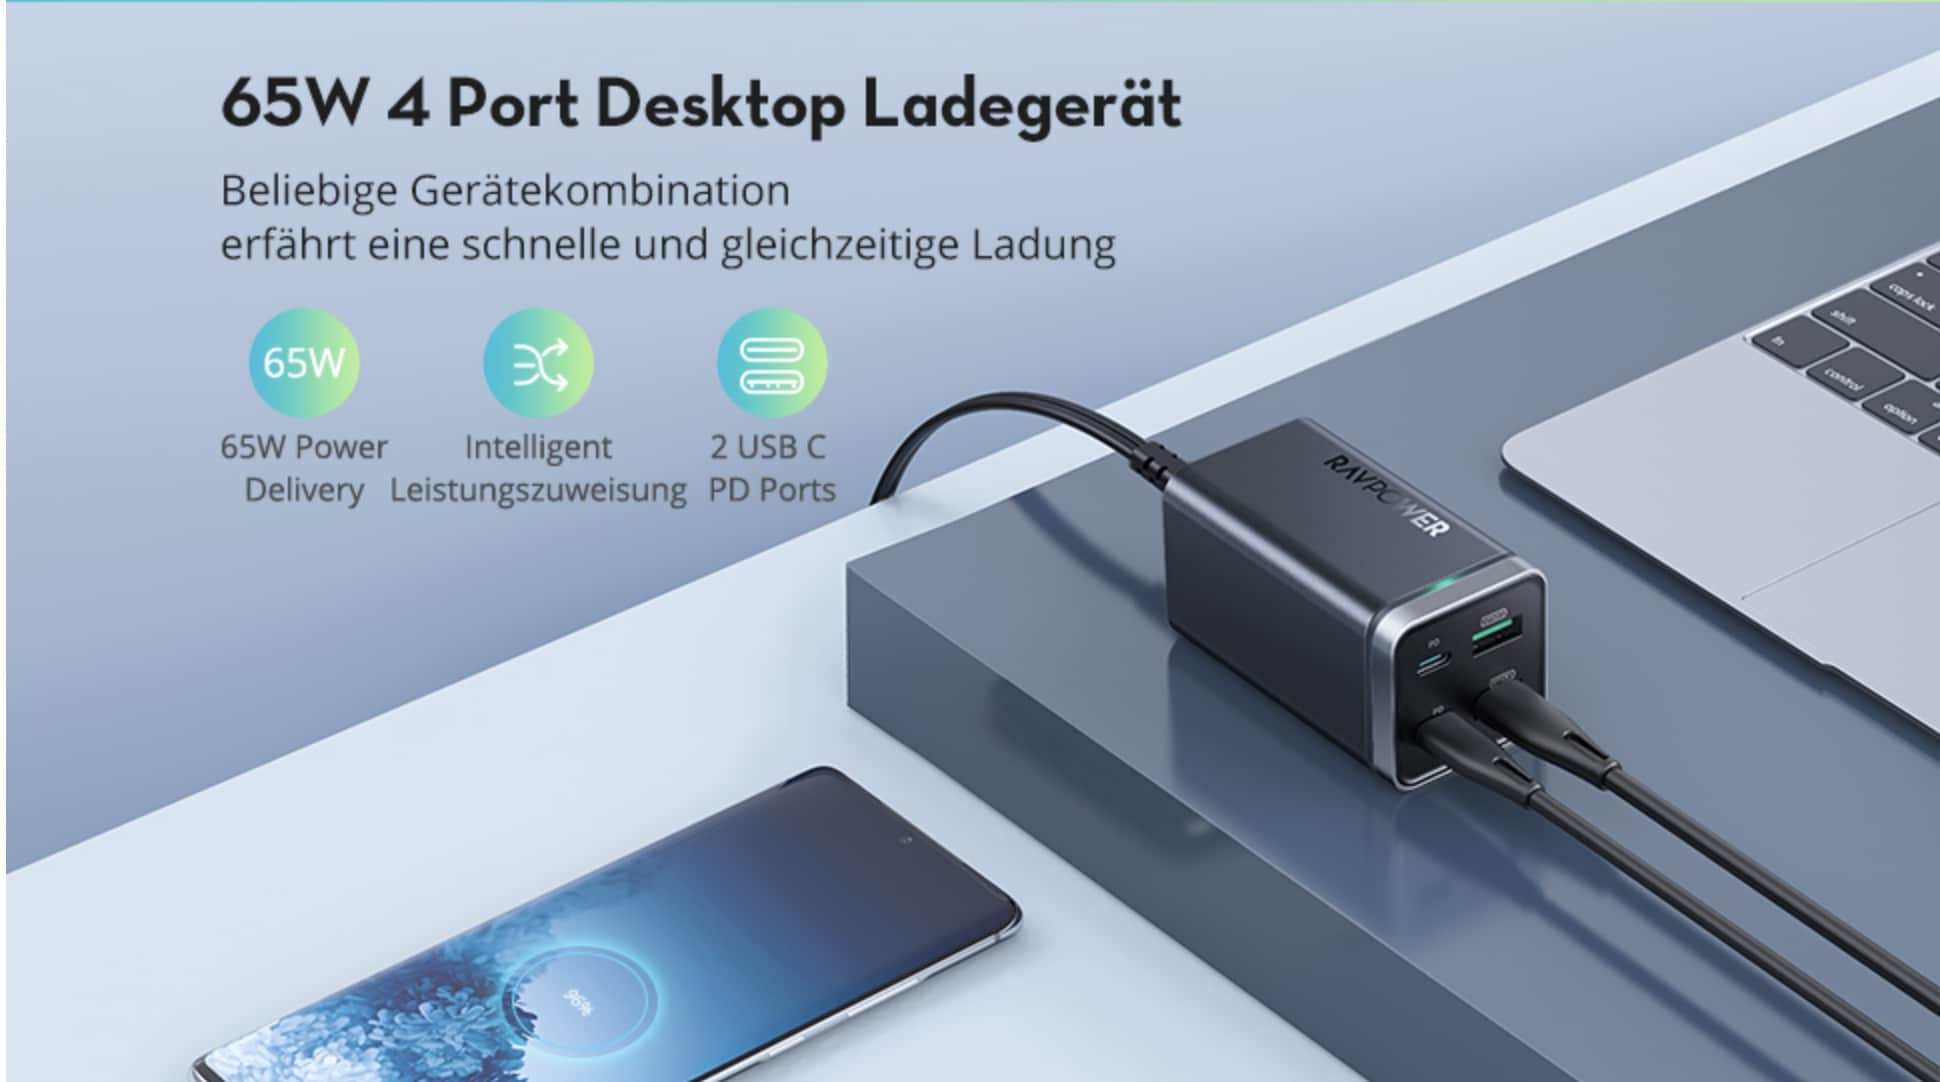 RAVPower 65W USB C Ladegeraet 4 Port